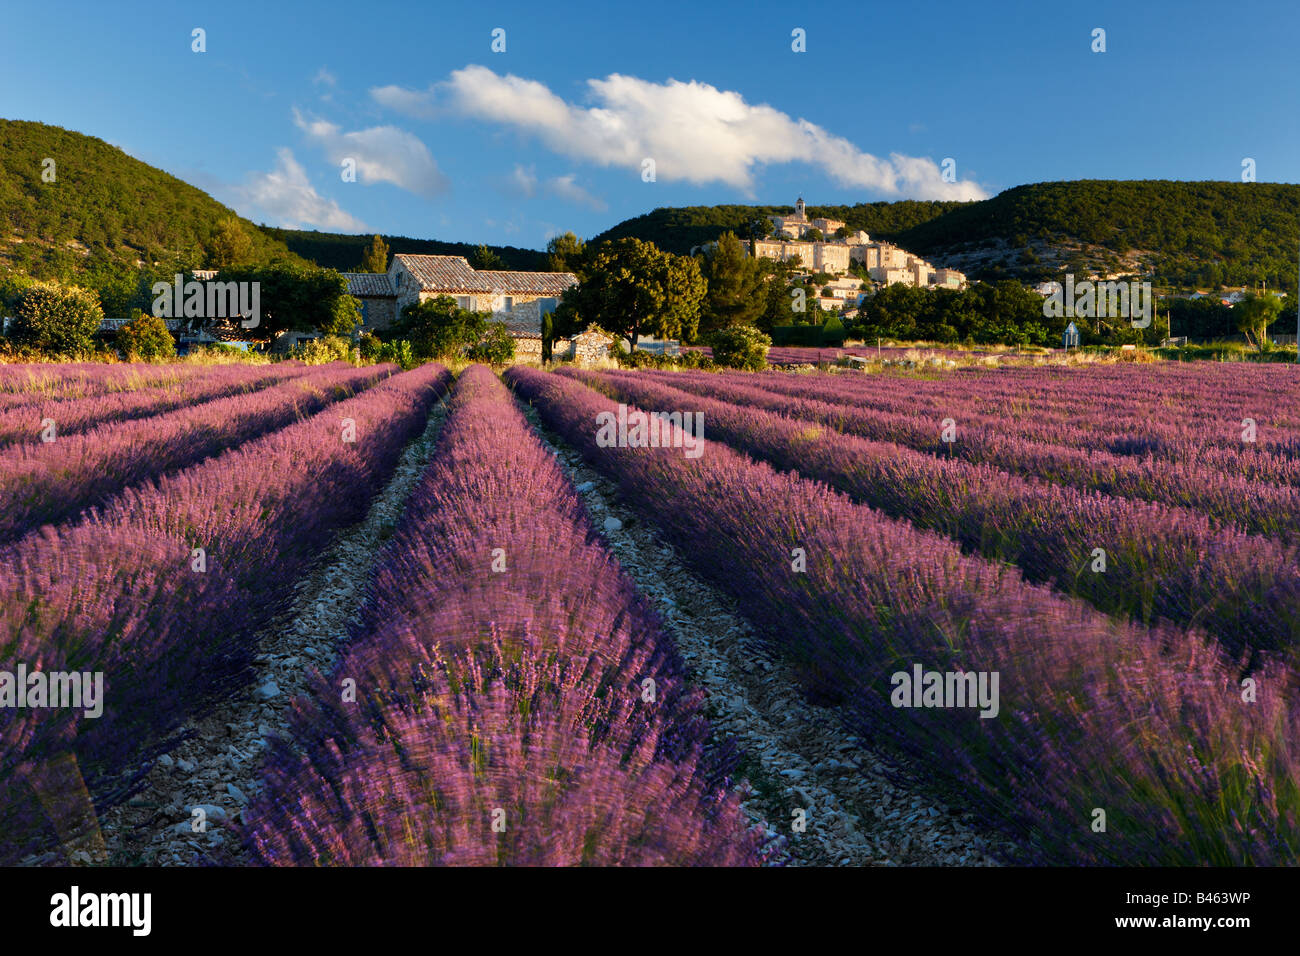 a lavender field with the village of Banon beyond, the Vaucluse, Provence, France - Stock Image